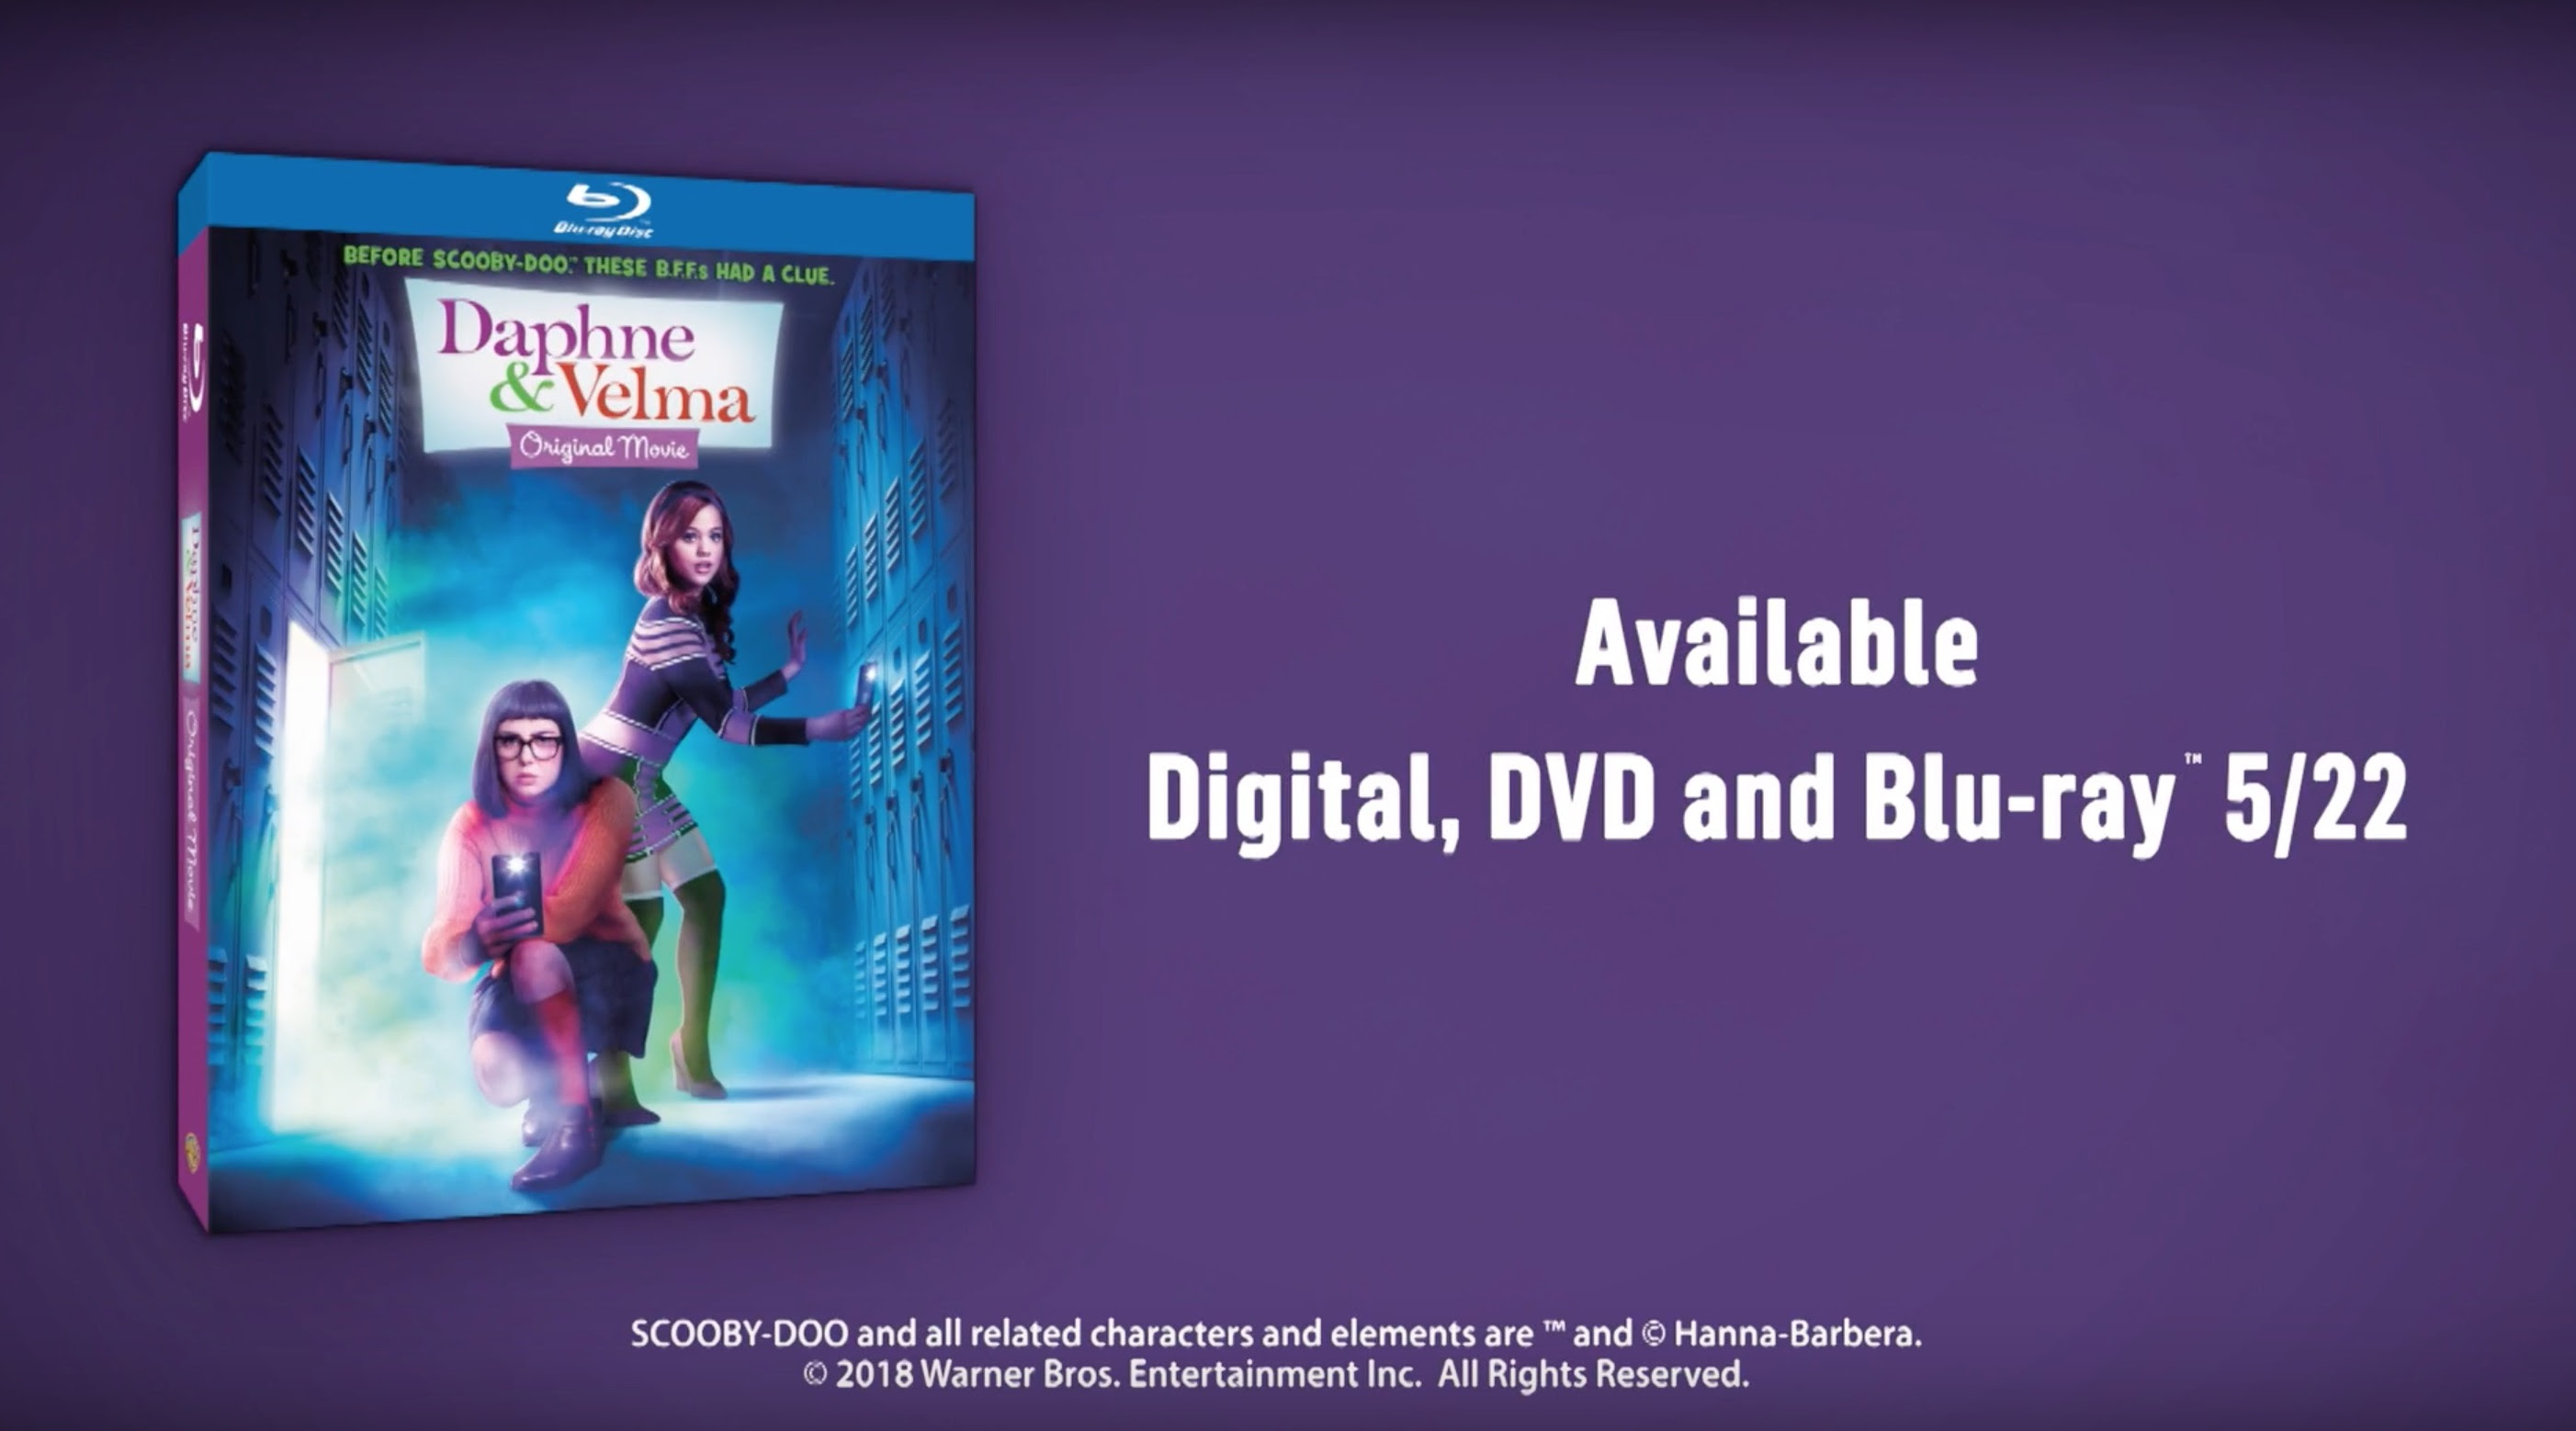 Daphne & Velma new release family movie